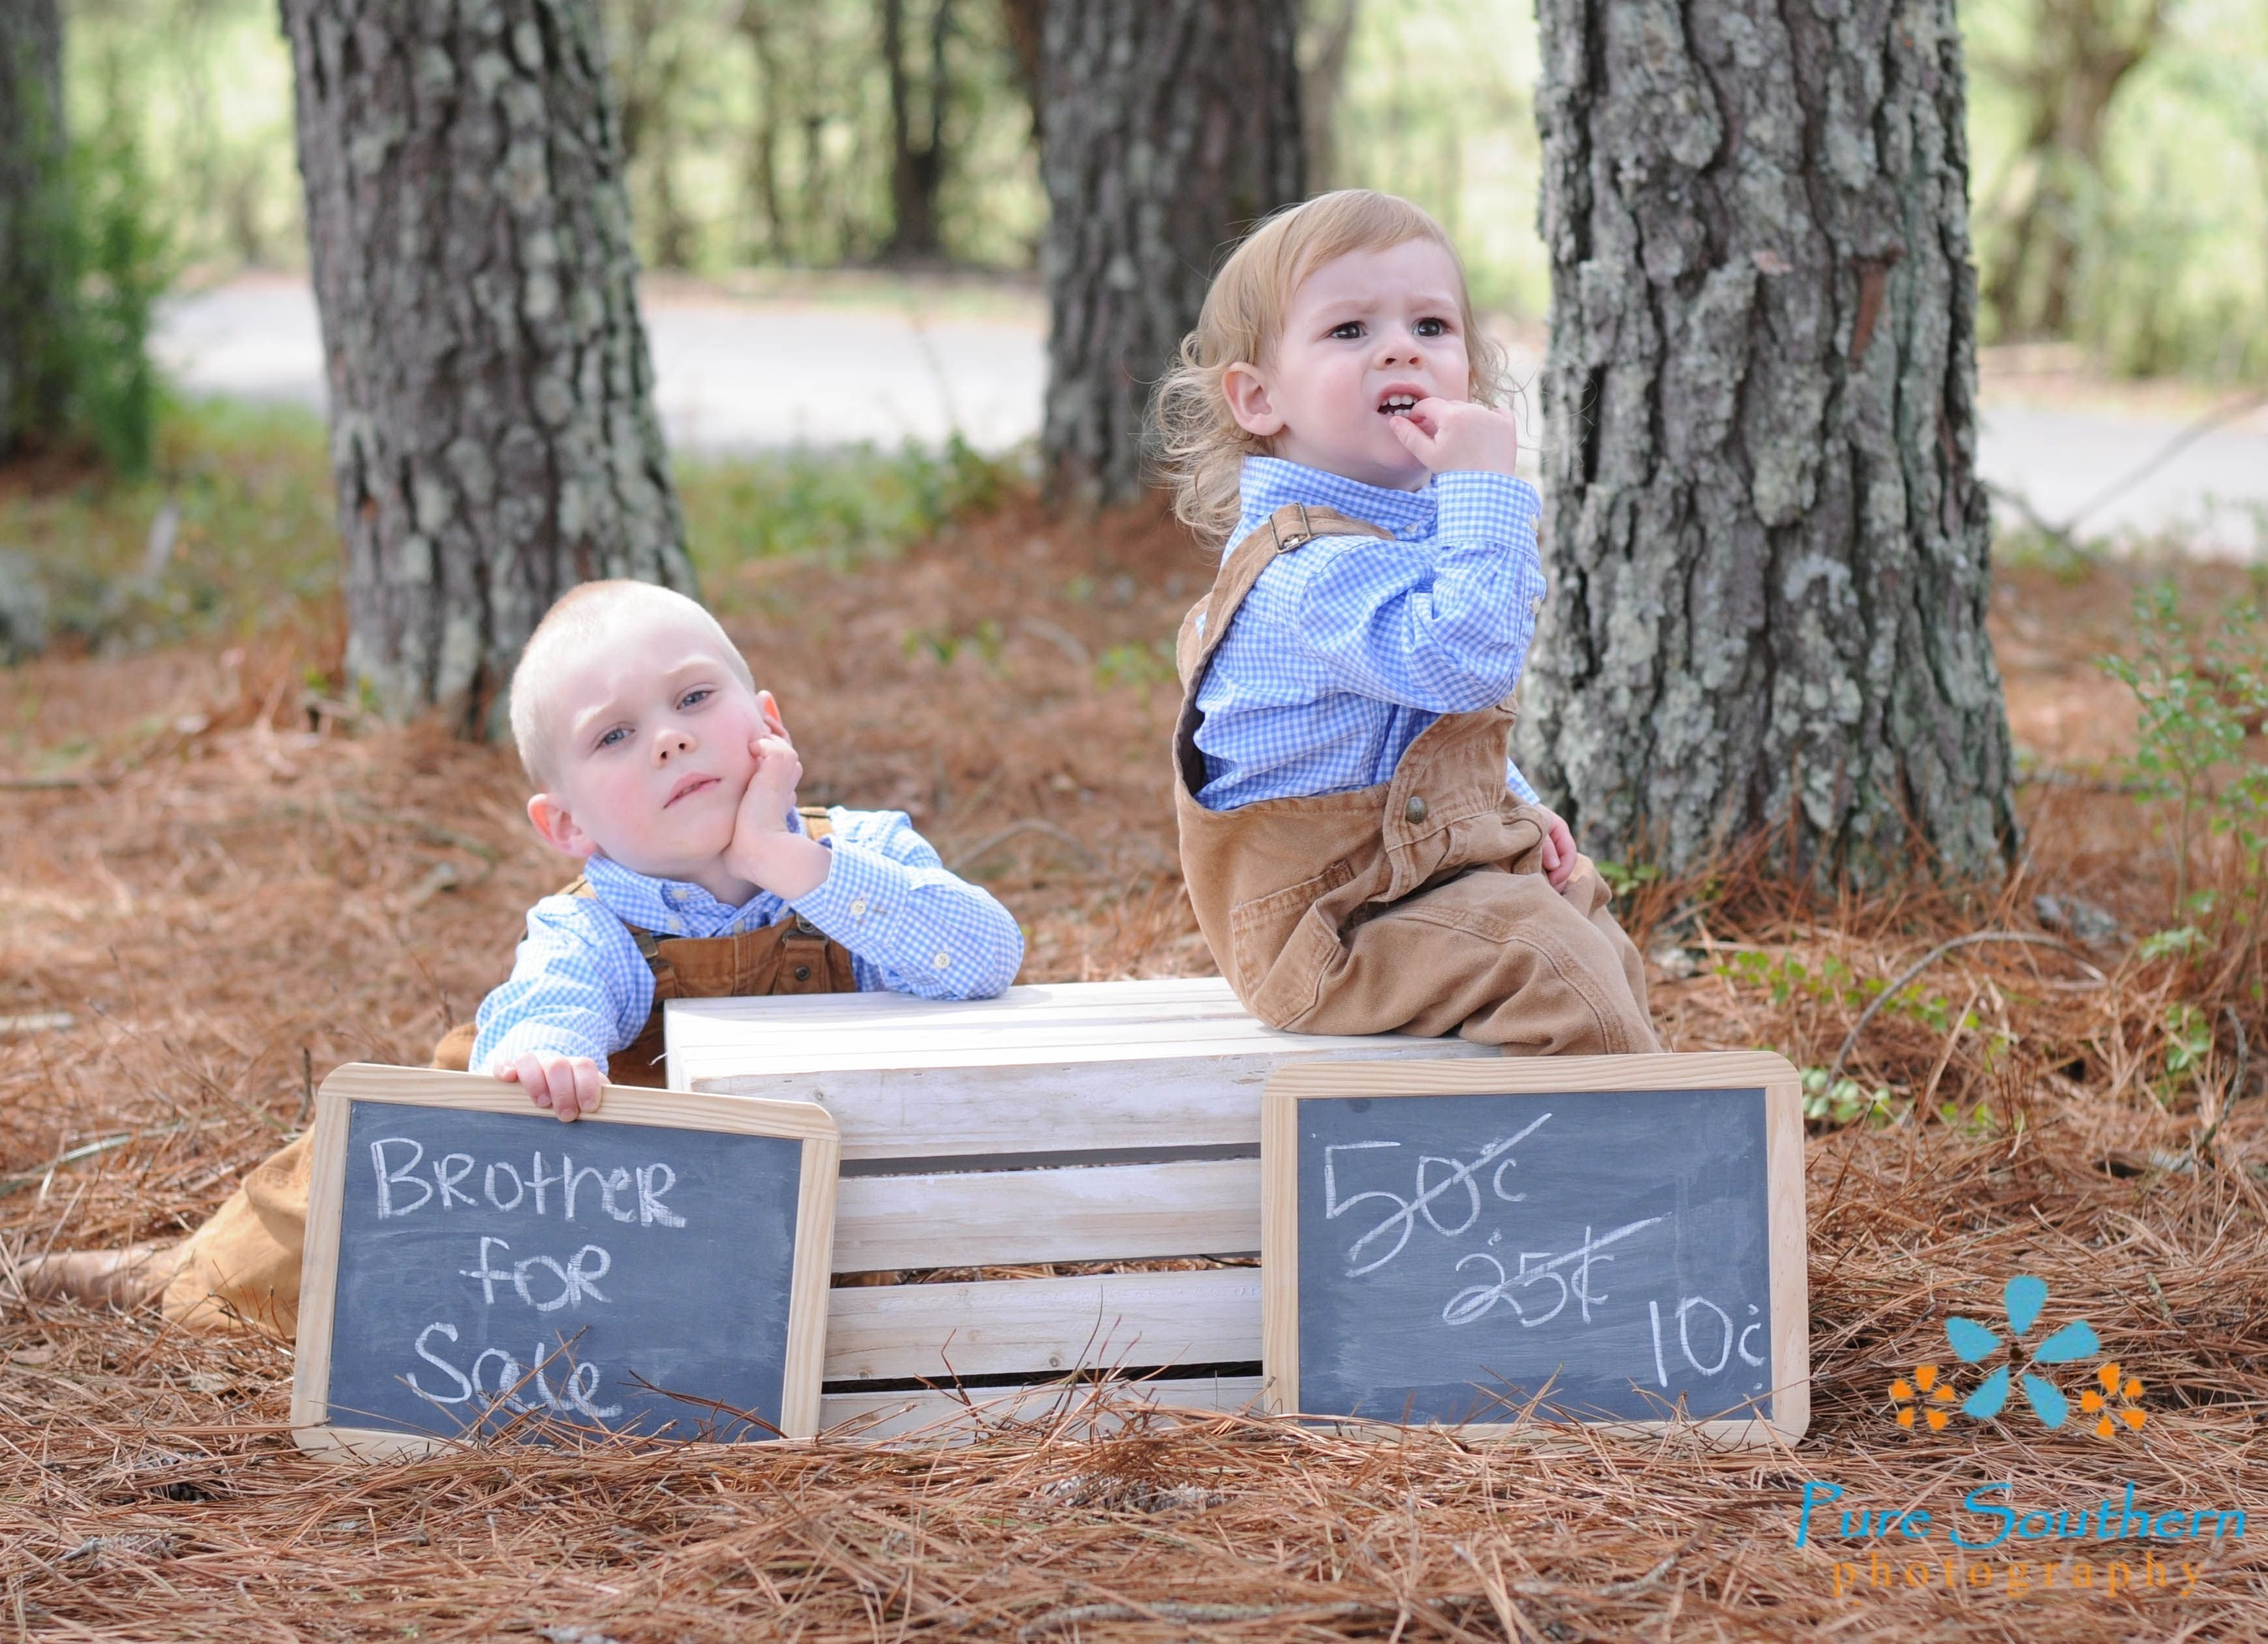 10 Elegant Easter Picture Ideas For Toddlers brother for sale twin photo ideas photography brothers photo